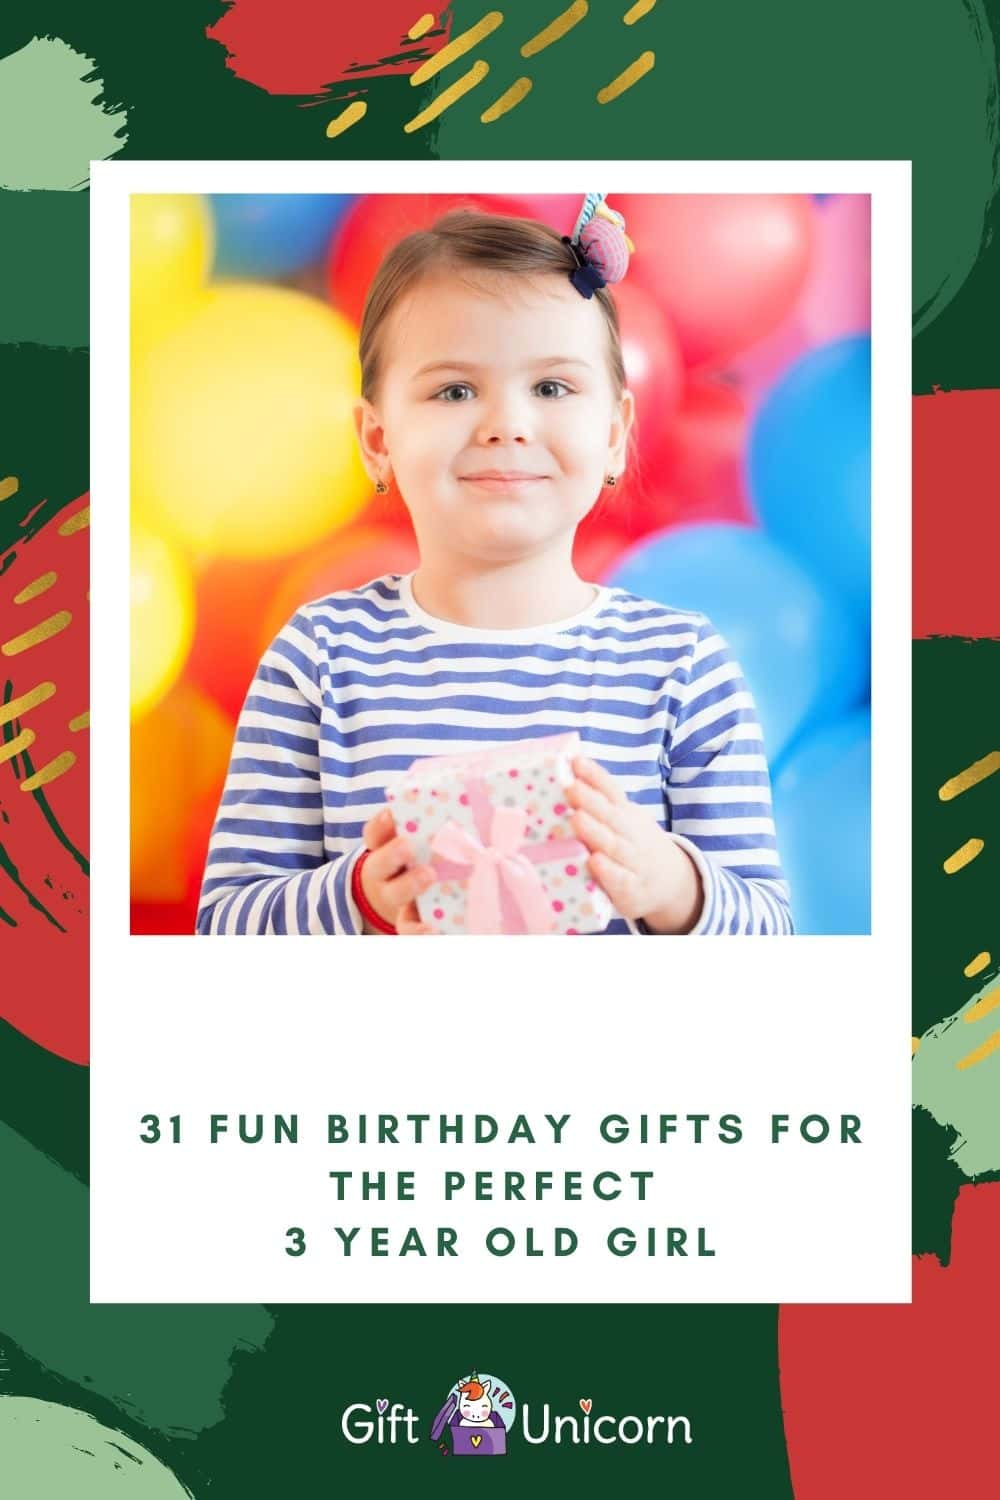 31 birthday gifts for a 3 year old girl